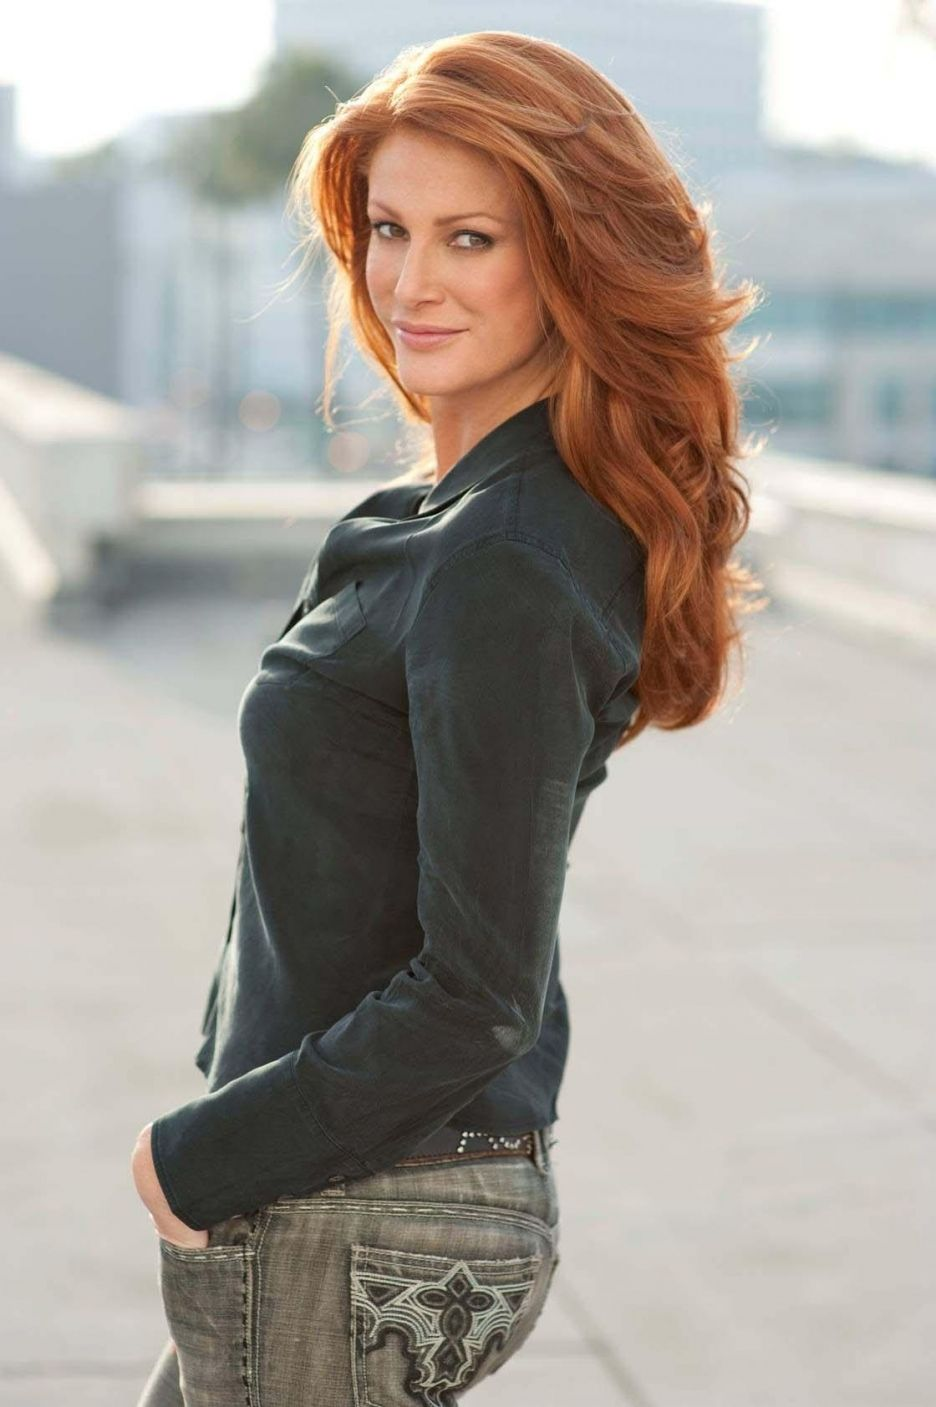 Angie Everhart Hot Videos angie everhartone of the most gorgeous redheads ever